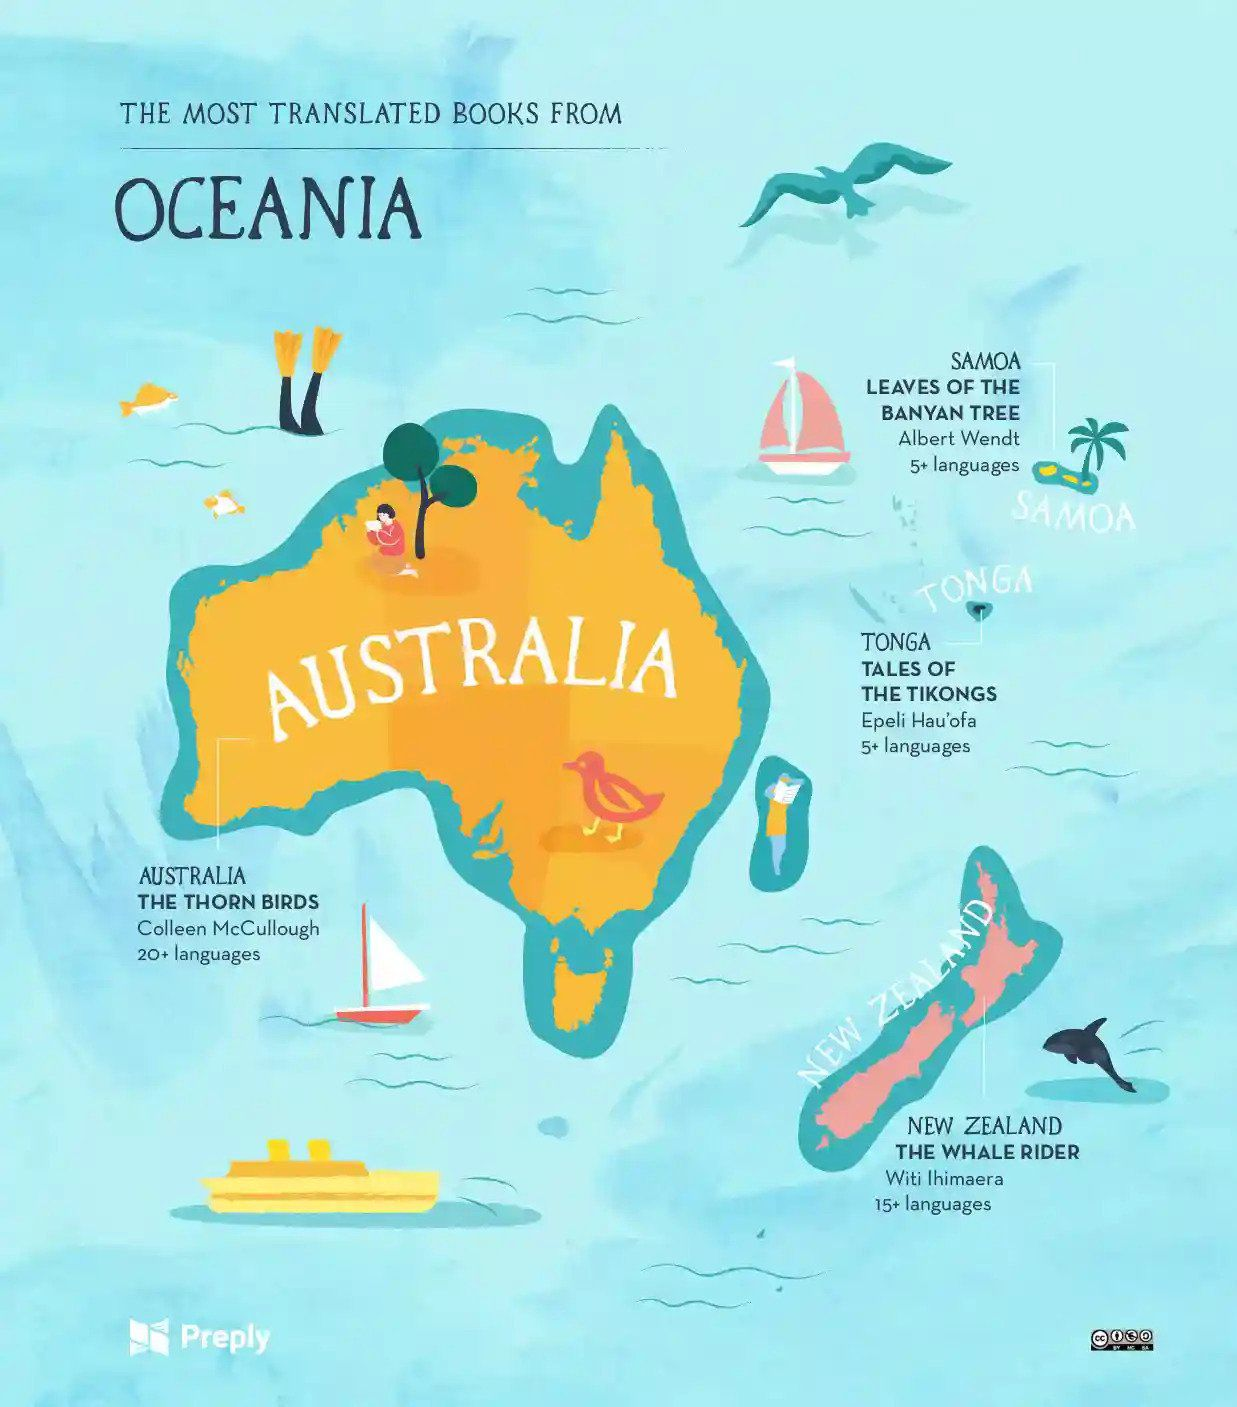 The Most Translated Books From Oceania map